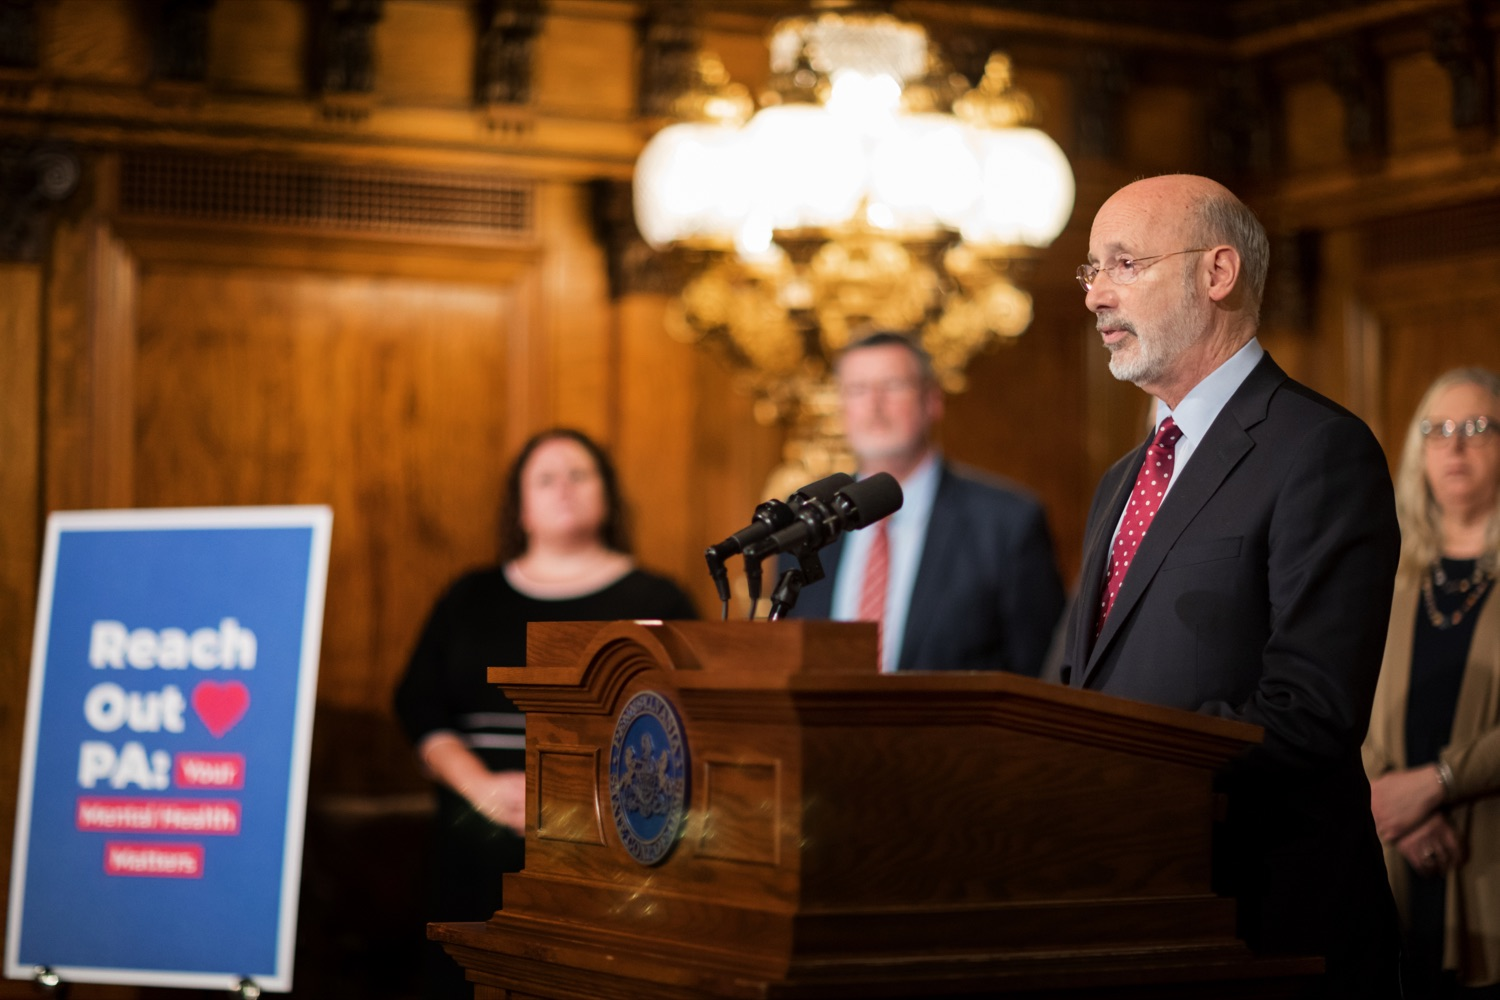 "<a href=""http://filesource.abacast.com/commonwealthofpa/photo/17694_GOV_Mental_Health_NK_004.JPG"" target=""_blank"">⇣ Download Photo<br></a>Pennsylvania Governor Tom Wolf speaks during a press conference inside the Governor's Reception Room at the State Capitol building in Harrisburg on Thursday, January 2, 2020. Governor Wolf announced a focused all-agency effort and anti-stigma campaign, Reach Out PA: Your Mental Health Matters, aimed at expanding resources and the states comprehensive support of mental health and related health care priorities in Pennsylvania."